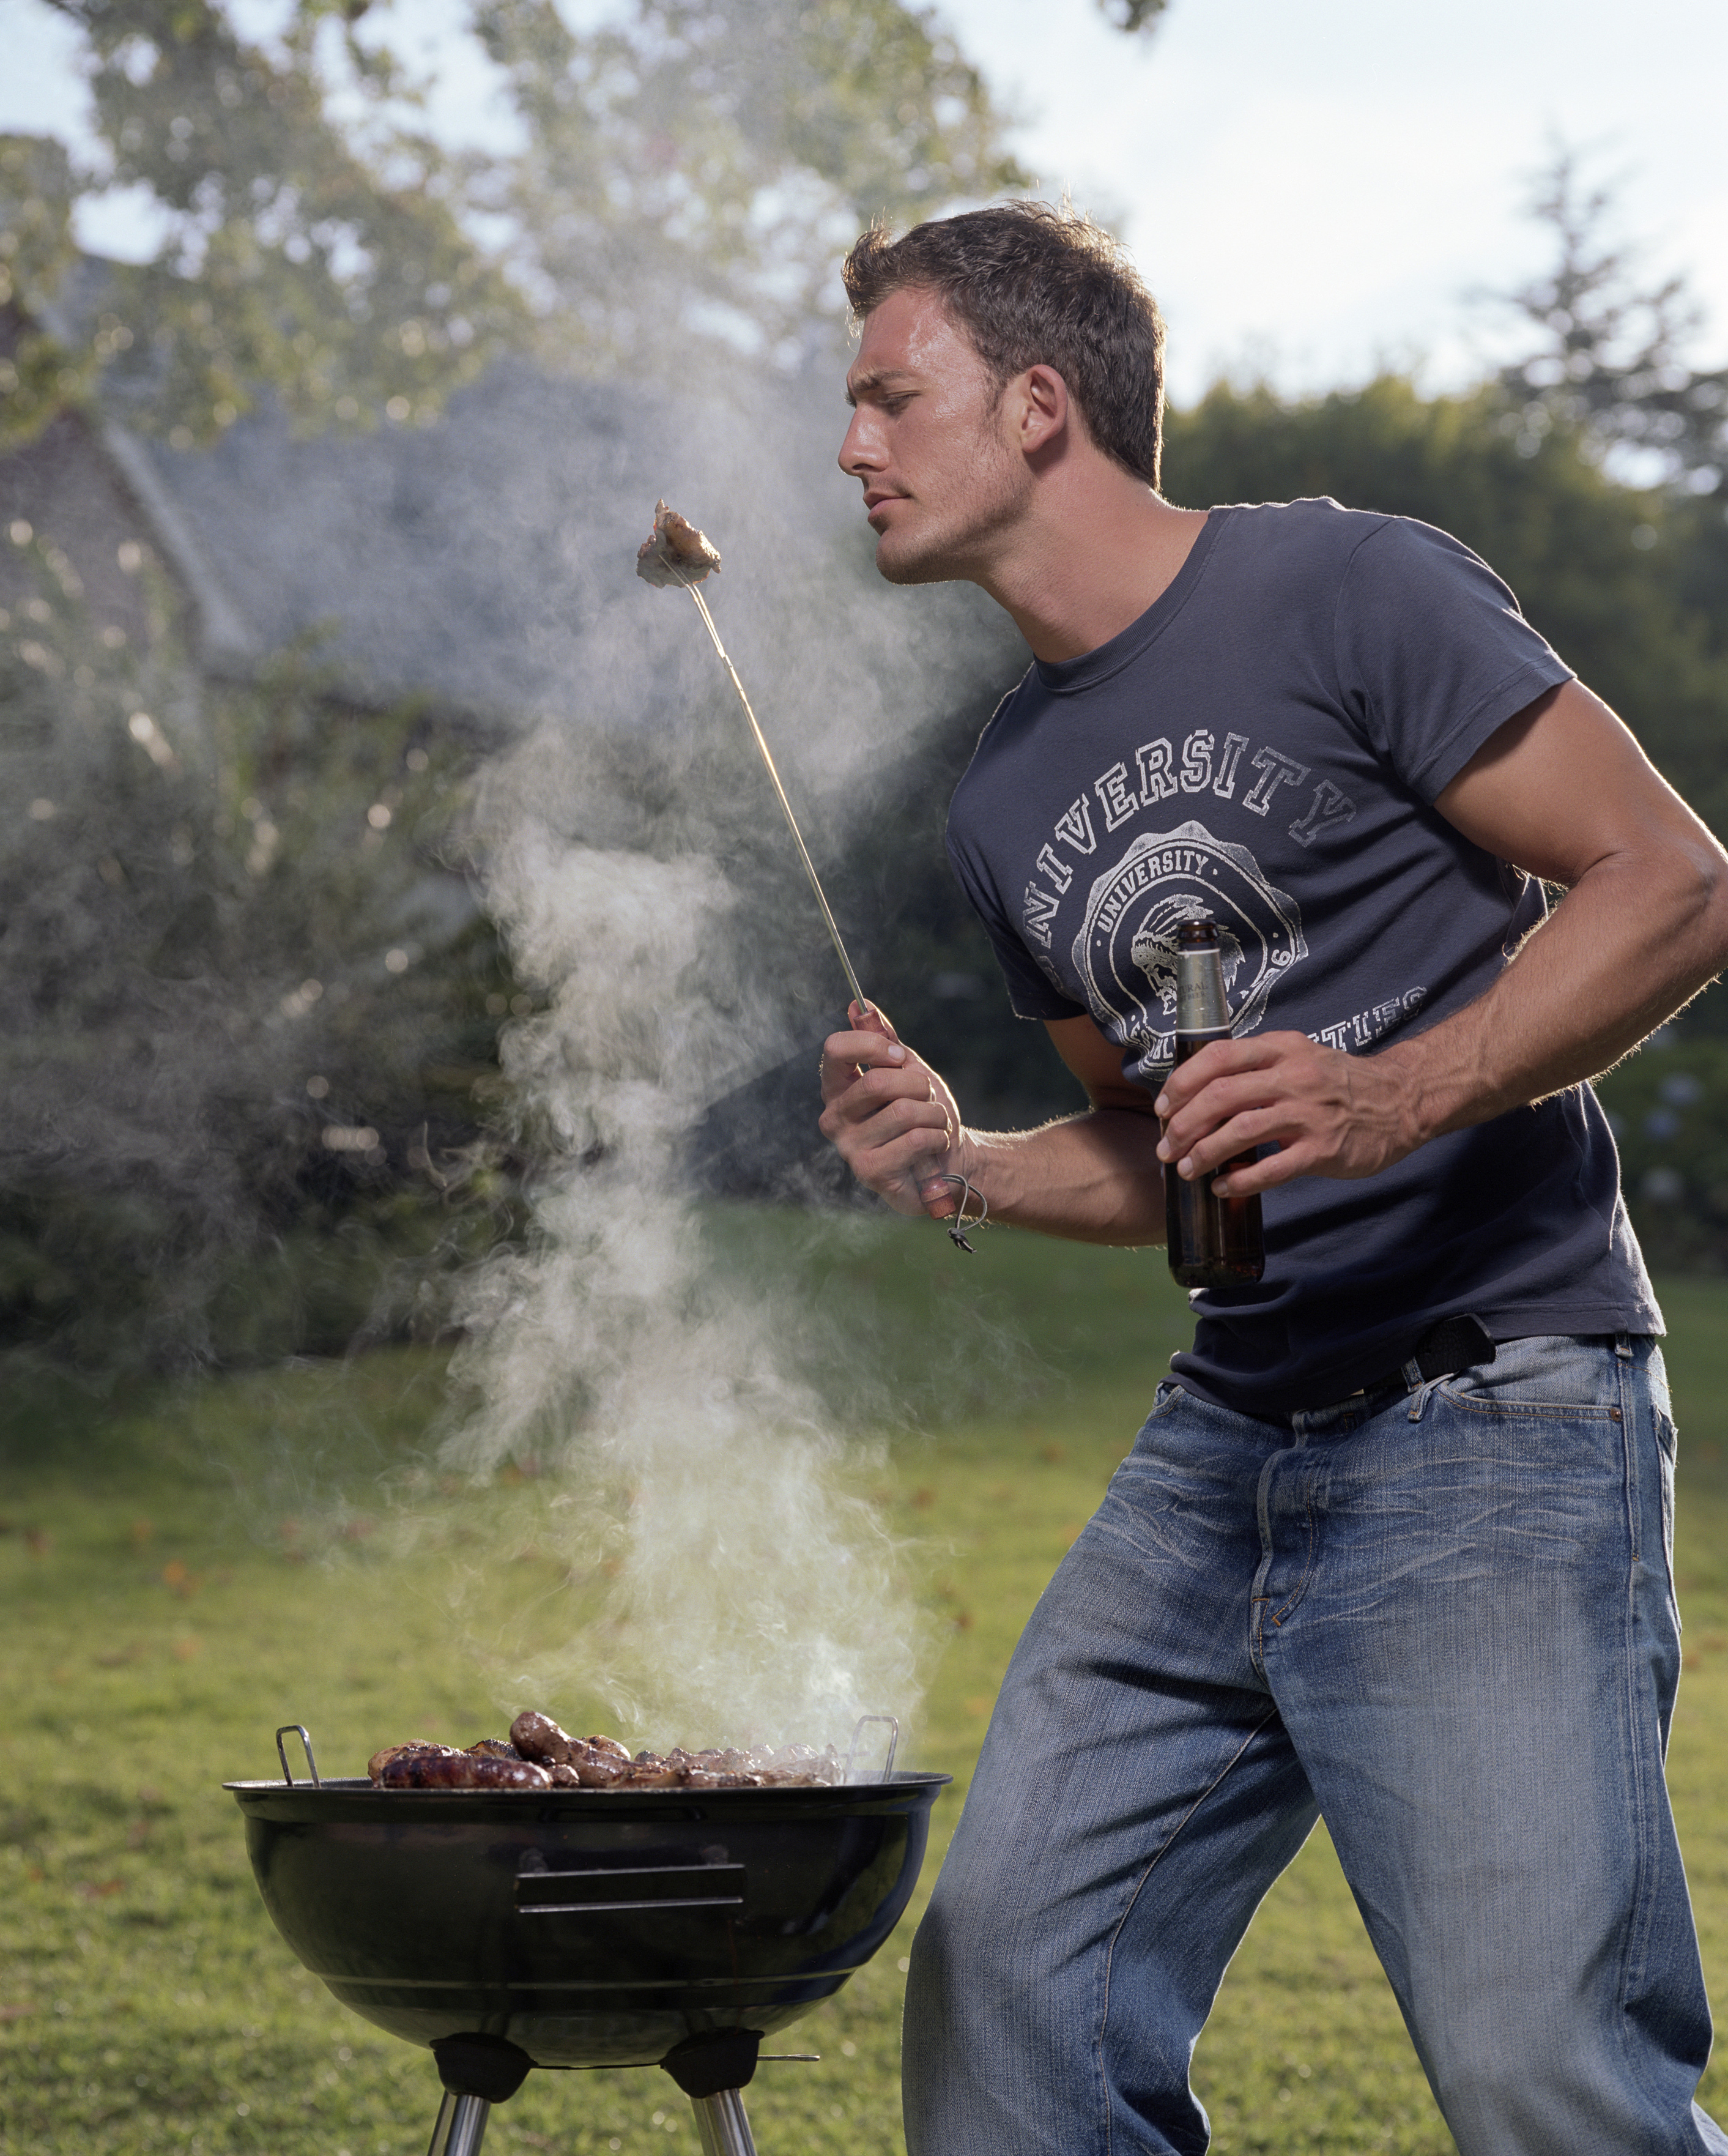 Young man tending barbecue, looking at skewered food